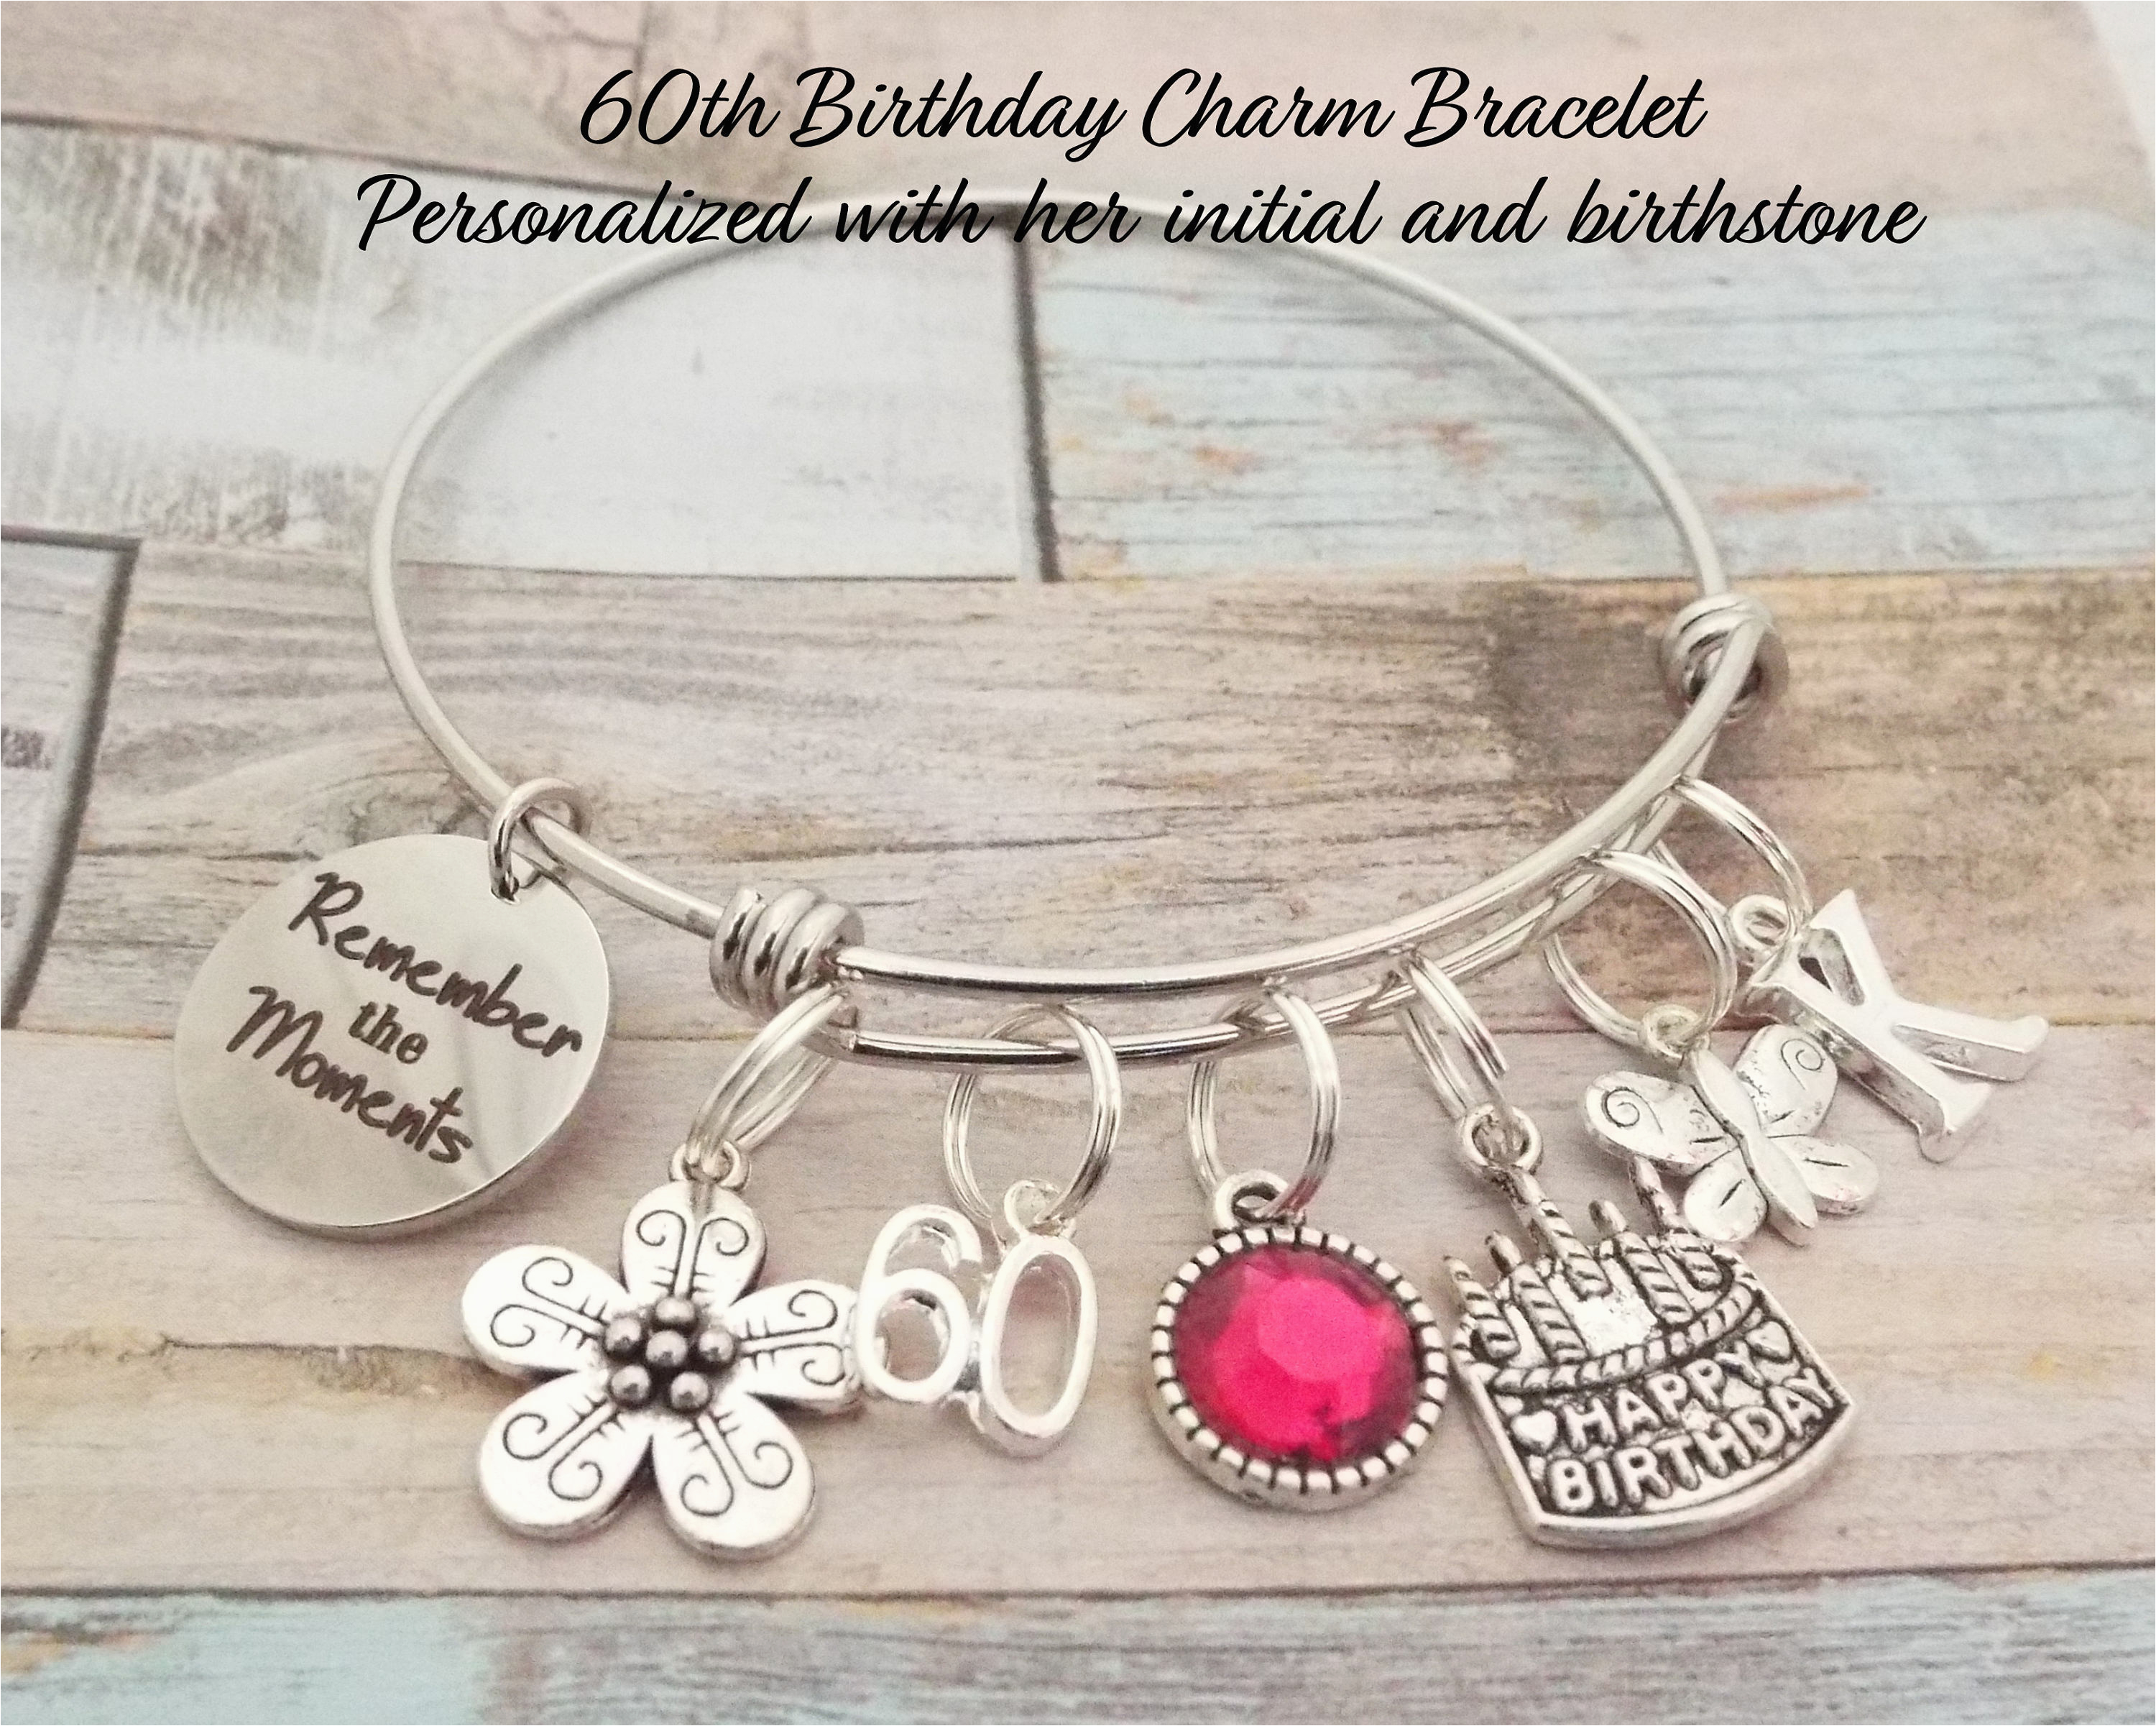 Personalised Gifts For Her 60th Birthday Gift Happy